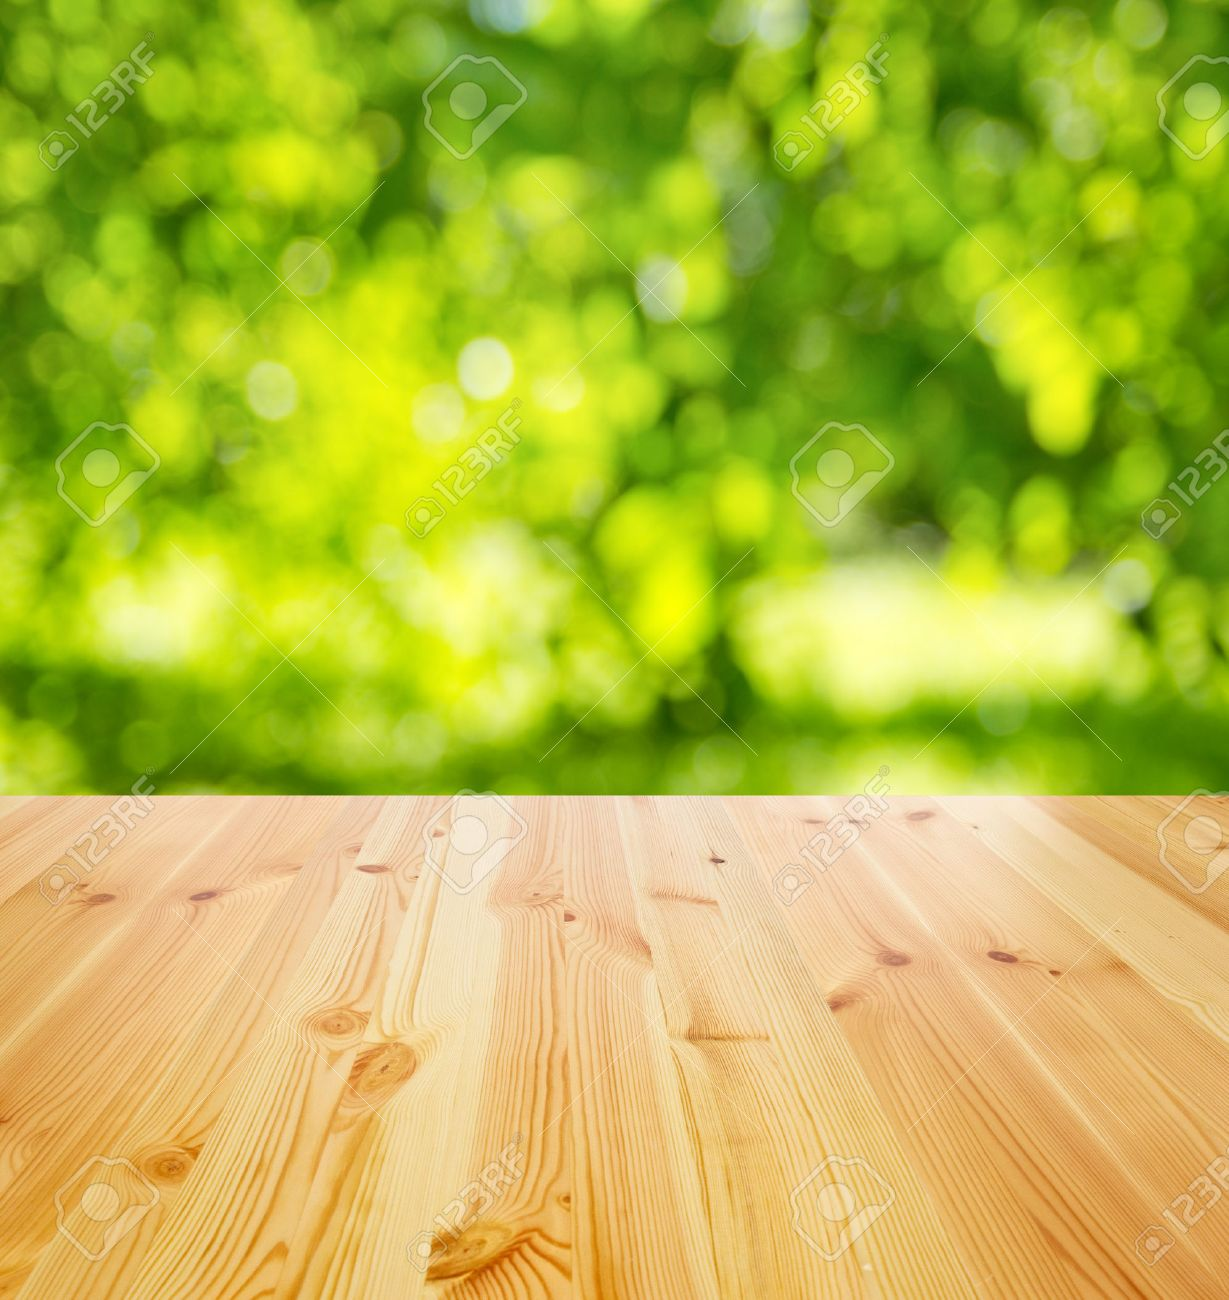 Plain wood table with hipster brick wall background stock photo - Wood Table Perspective Empty Wooden Table Against Sunny Garden For Background Stock Photo